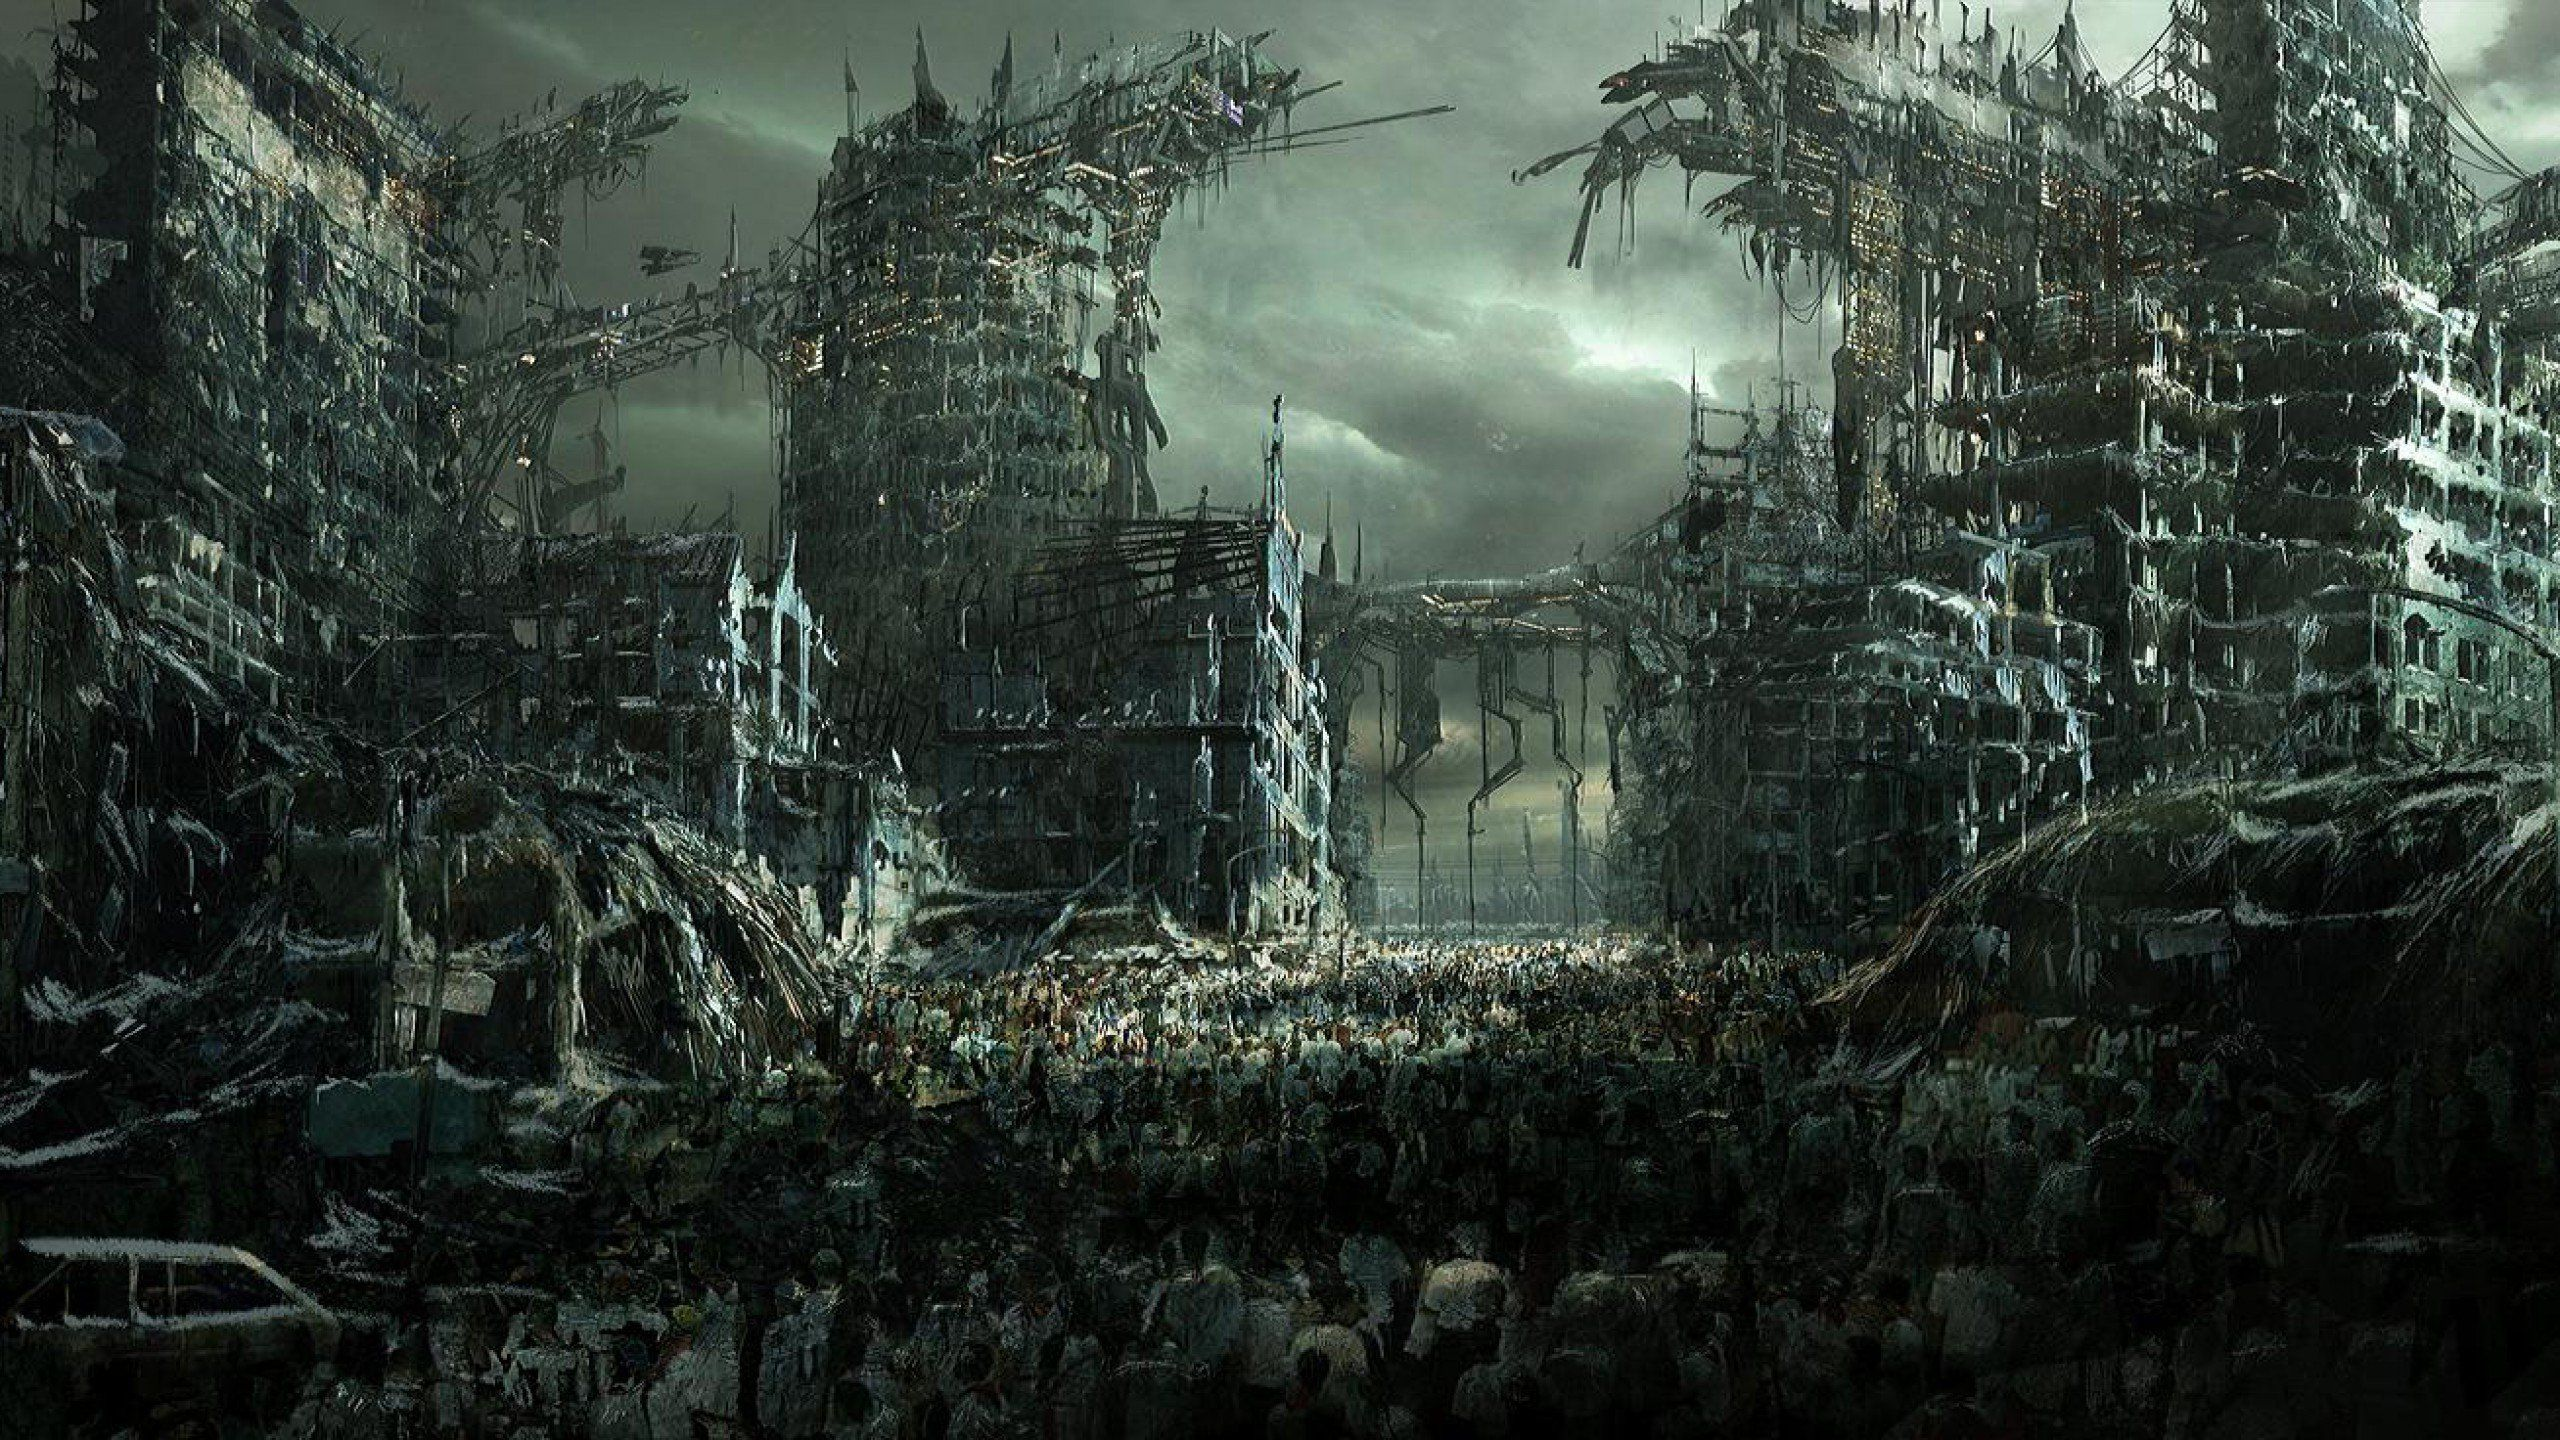 Wallpaper Digital Art Miscellaneous Apocalypse Zombie Pictures Jpg 2560 1440 Zombie Wallpaper Zombie Background Zombie